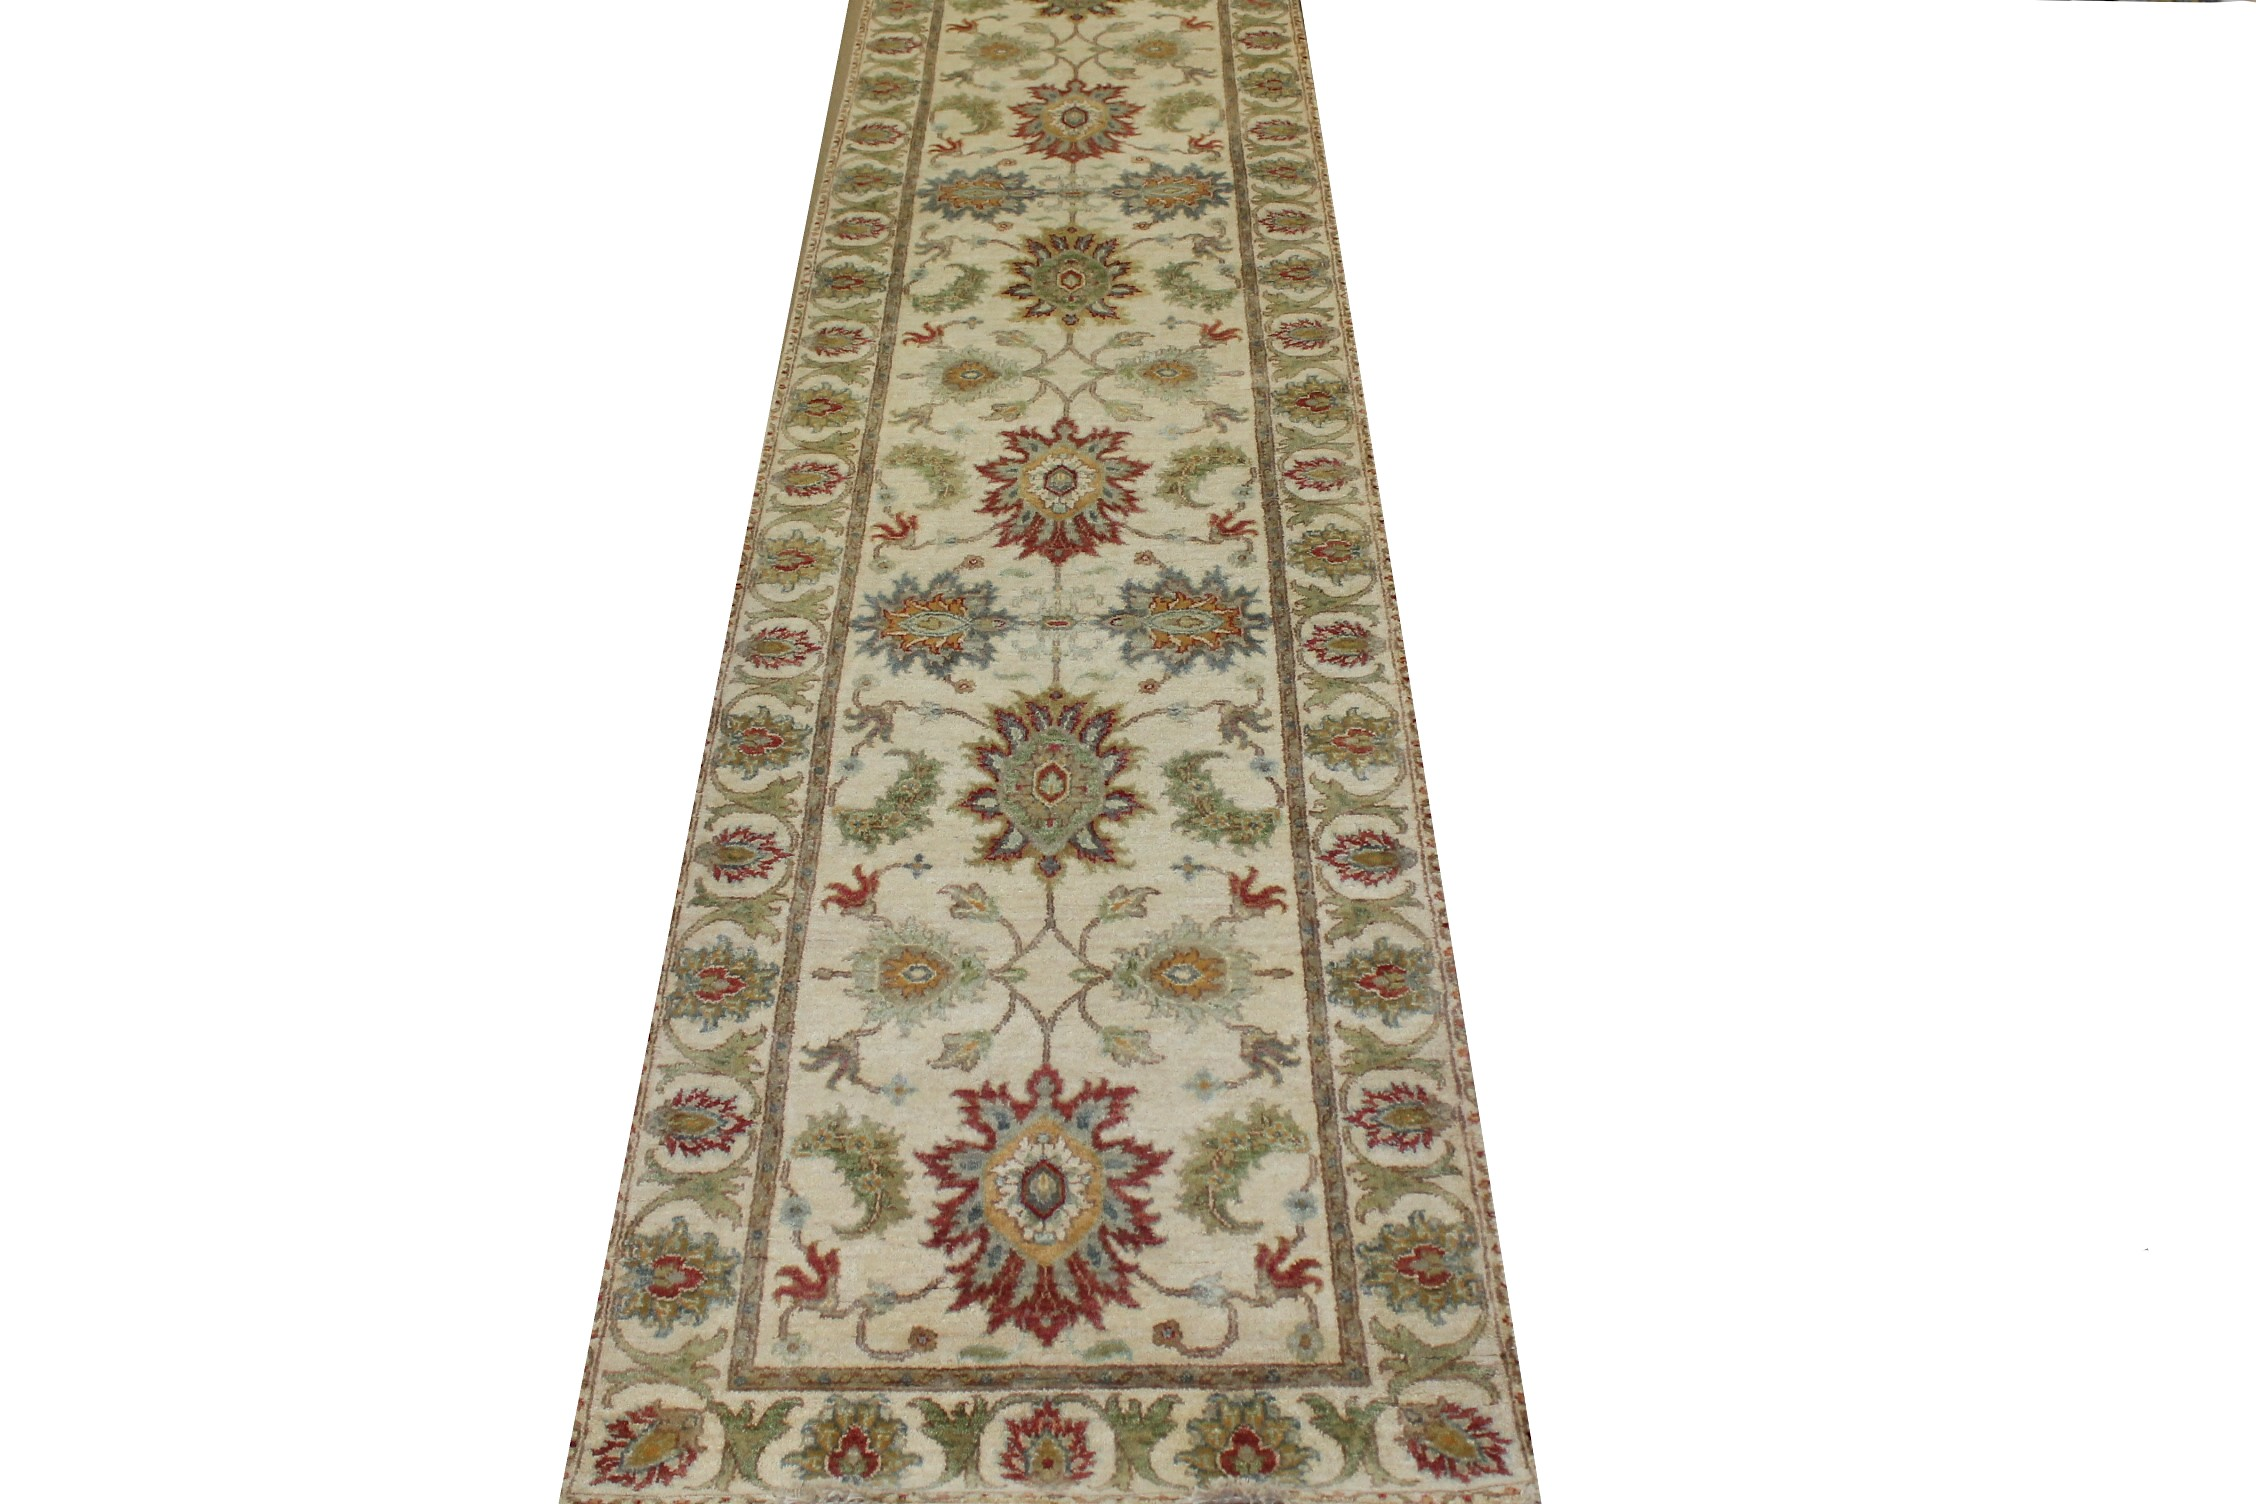 13 ft. & Longer Runner Traditional Hand Knotted Wool Area Rug - MR023110